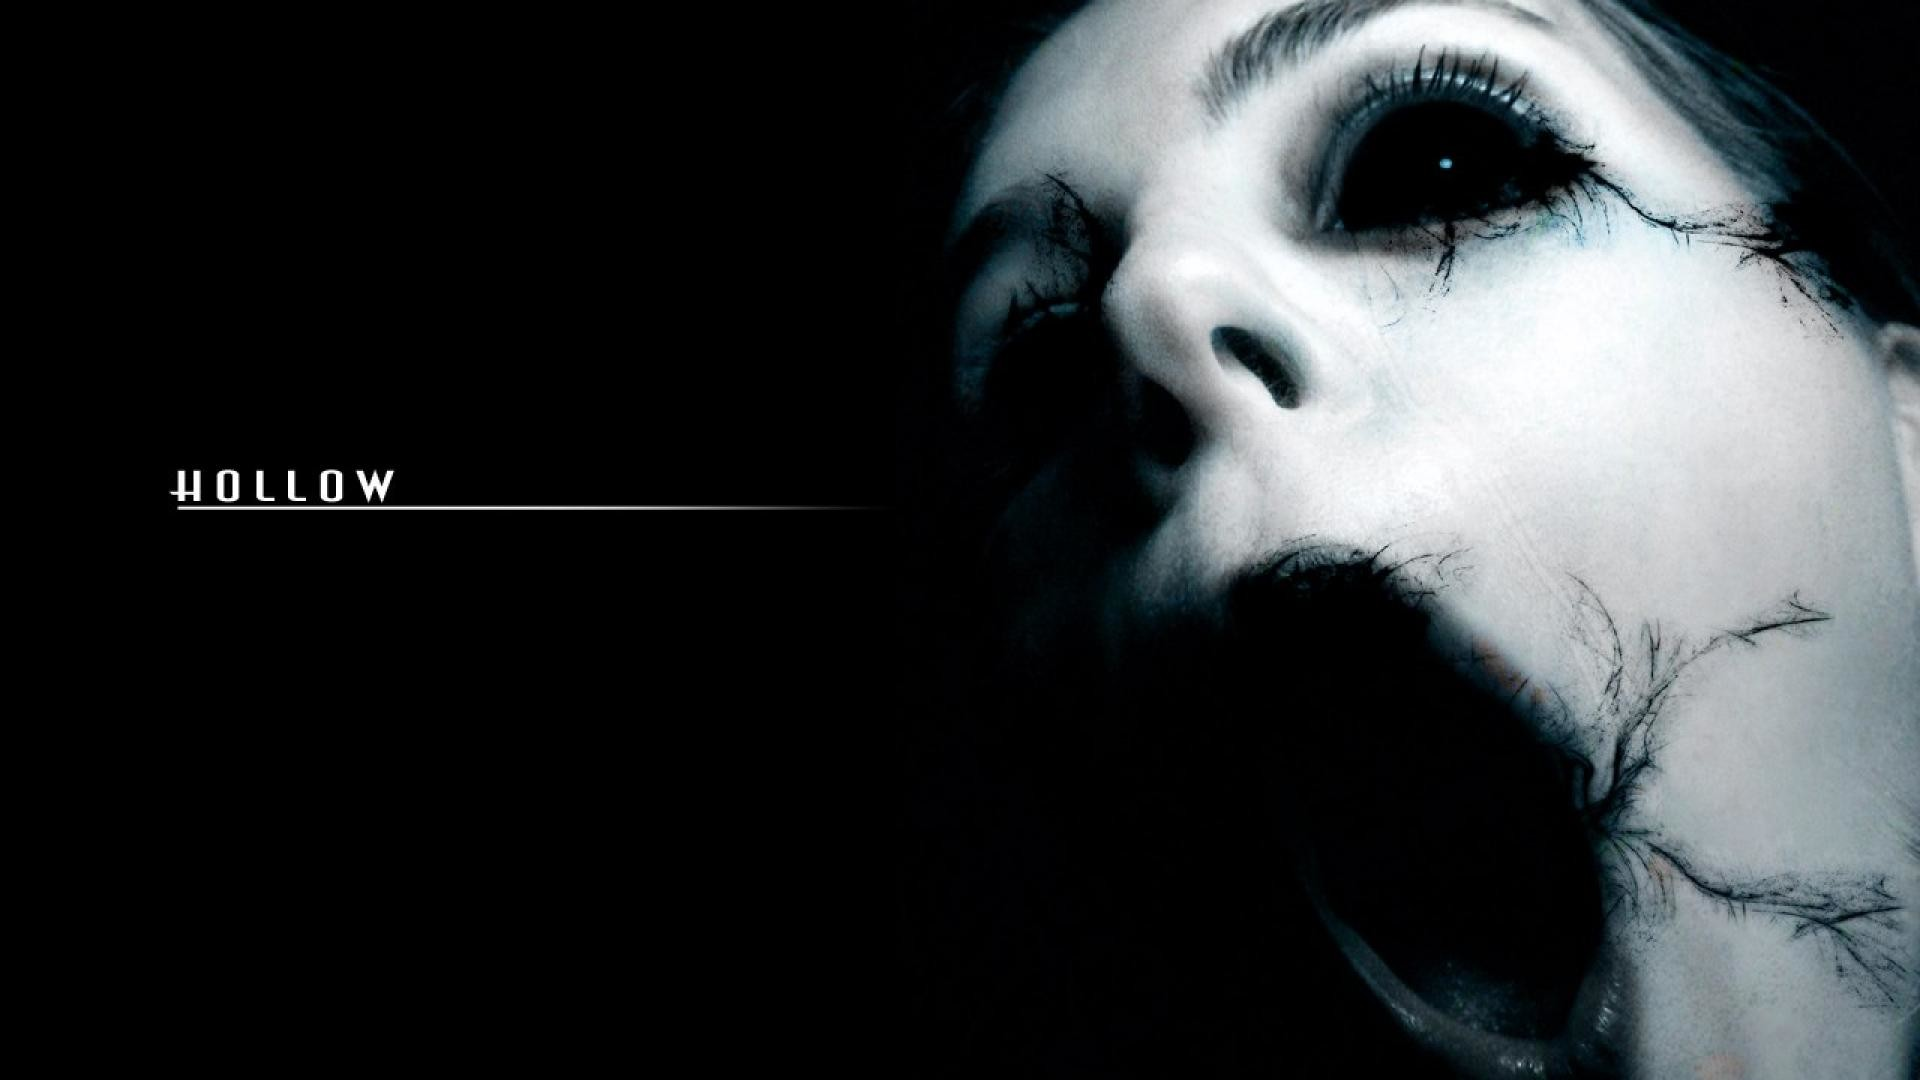 6. scary pictures HD6